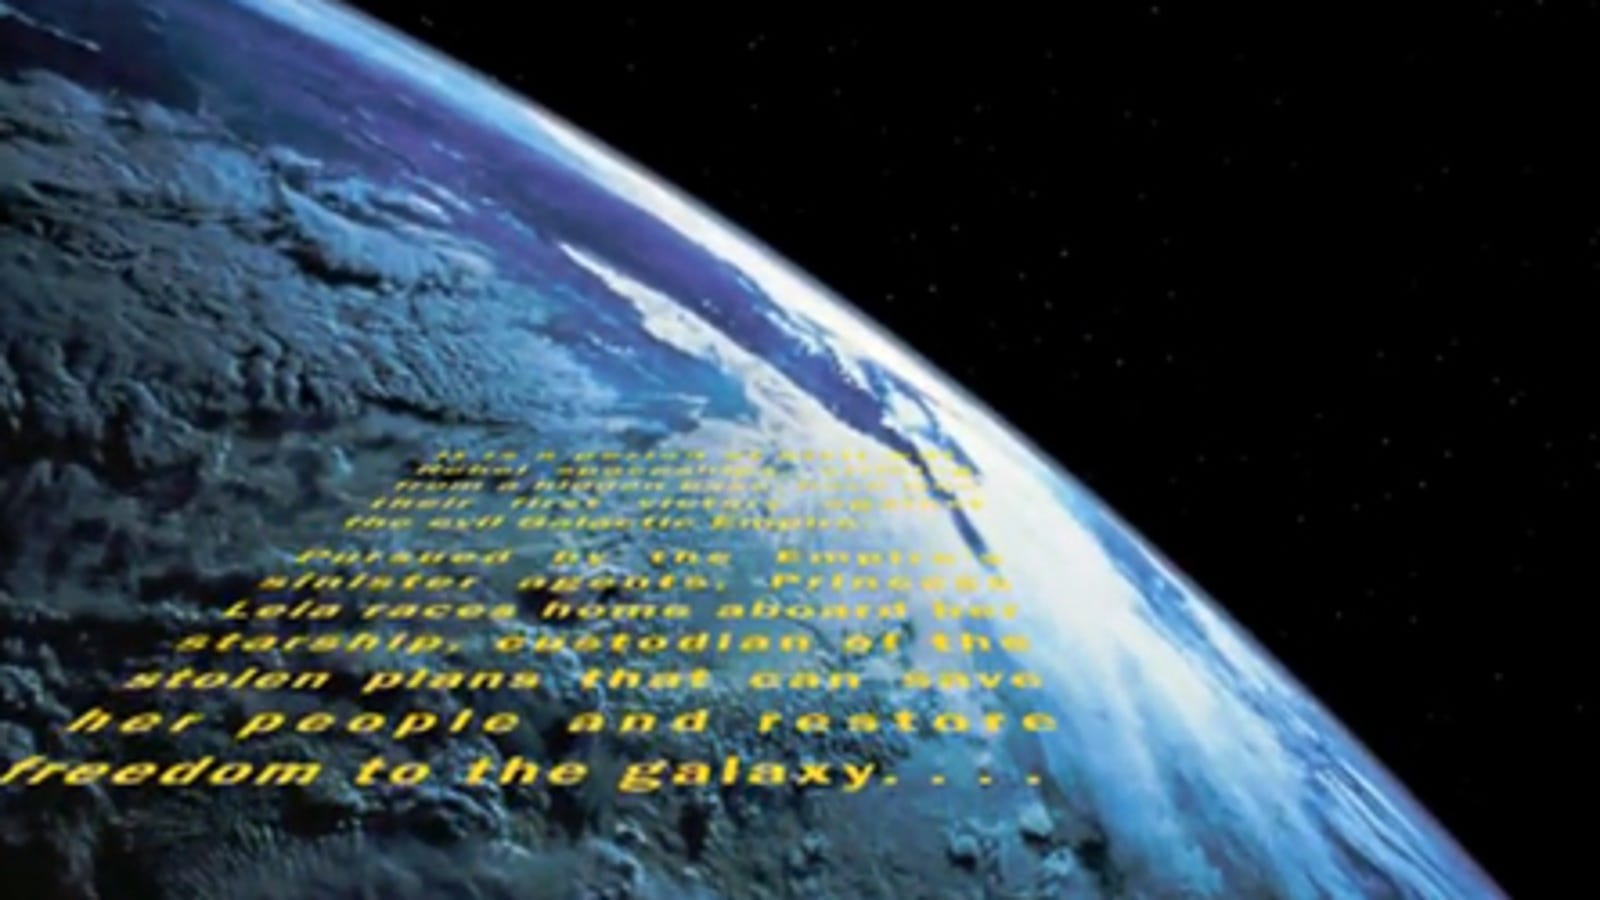 The Star Wars Opening Crawl Finally Reaches Earth